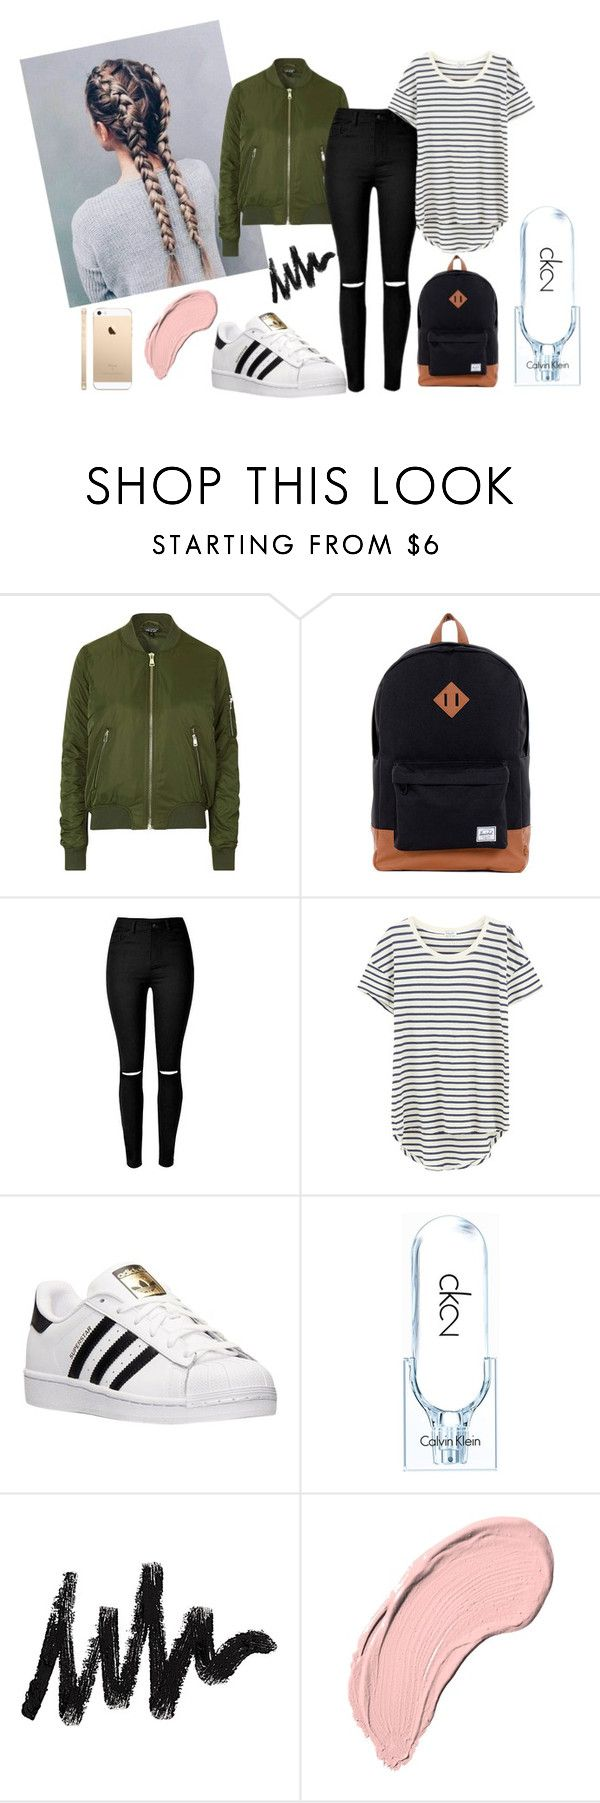 """Back to school 2016"" by tess-302 on Polyvore featuring Topshop, Herschel Supply Co., Splendid, adidas, Calvin Klein and NYX"